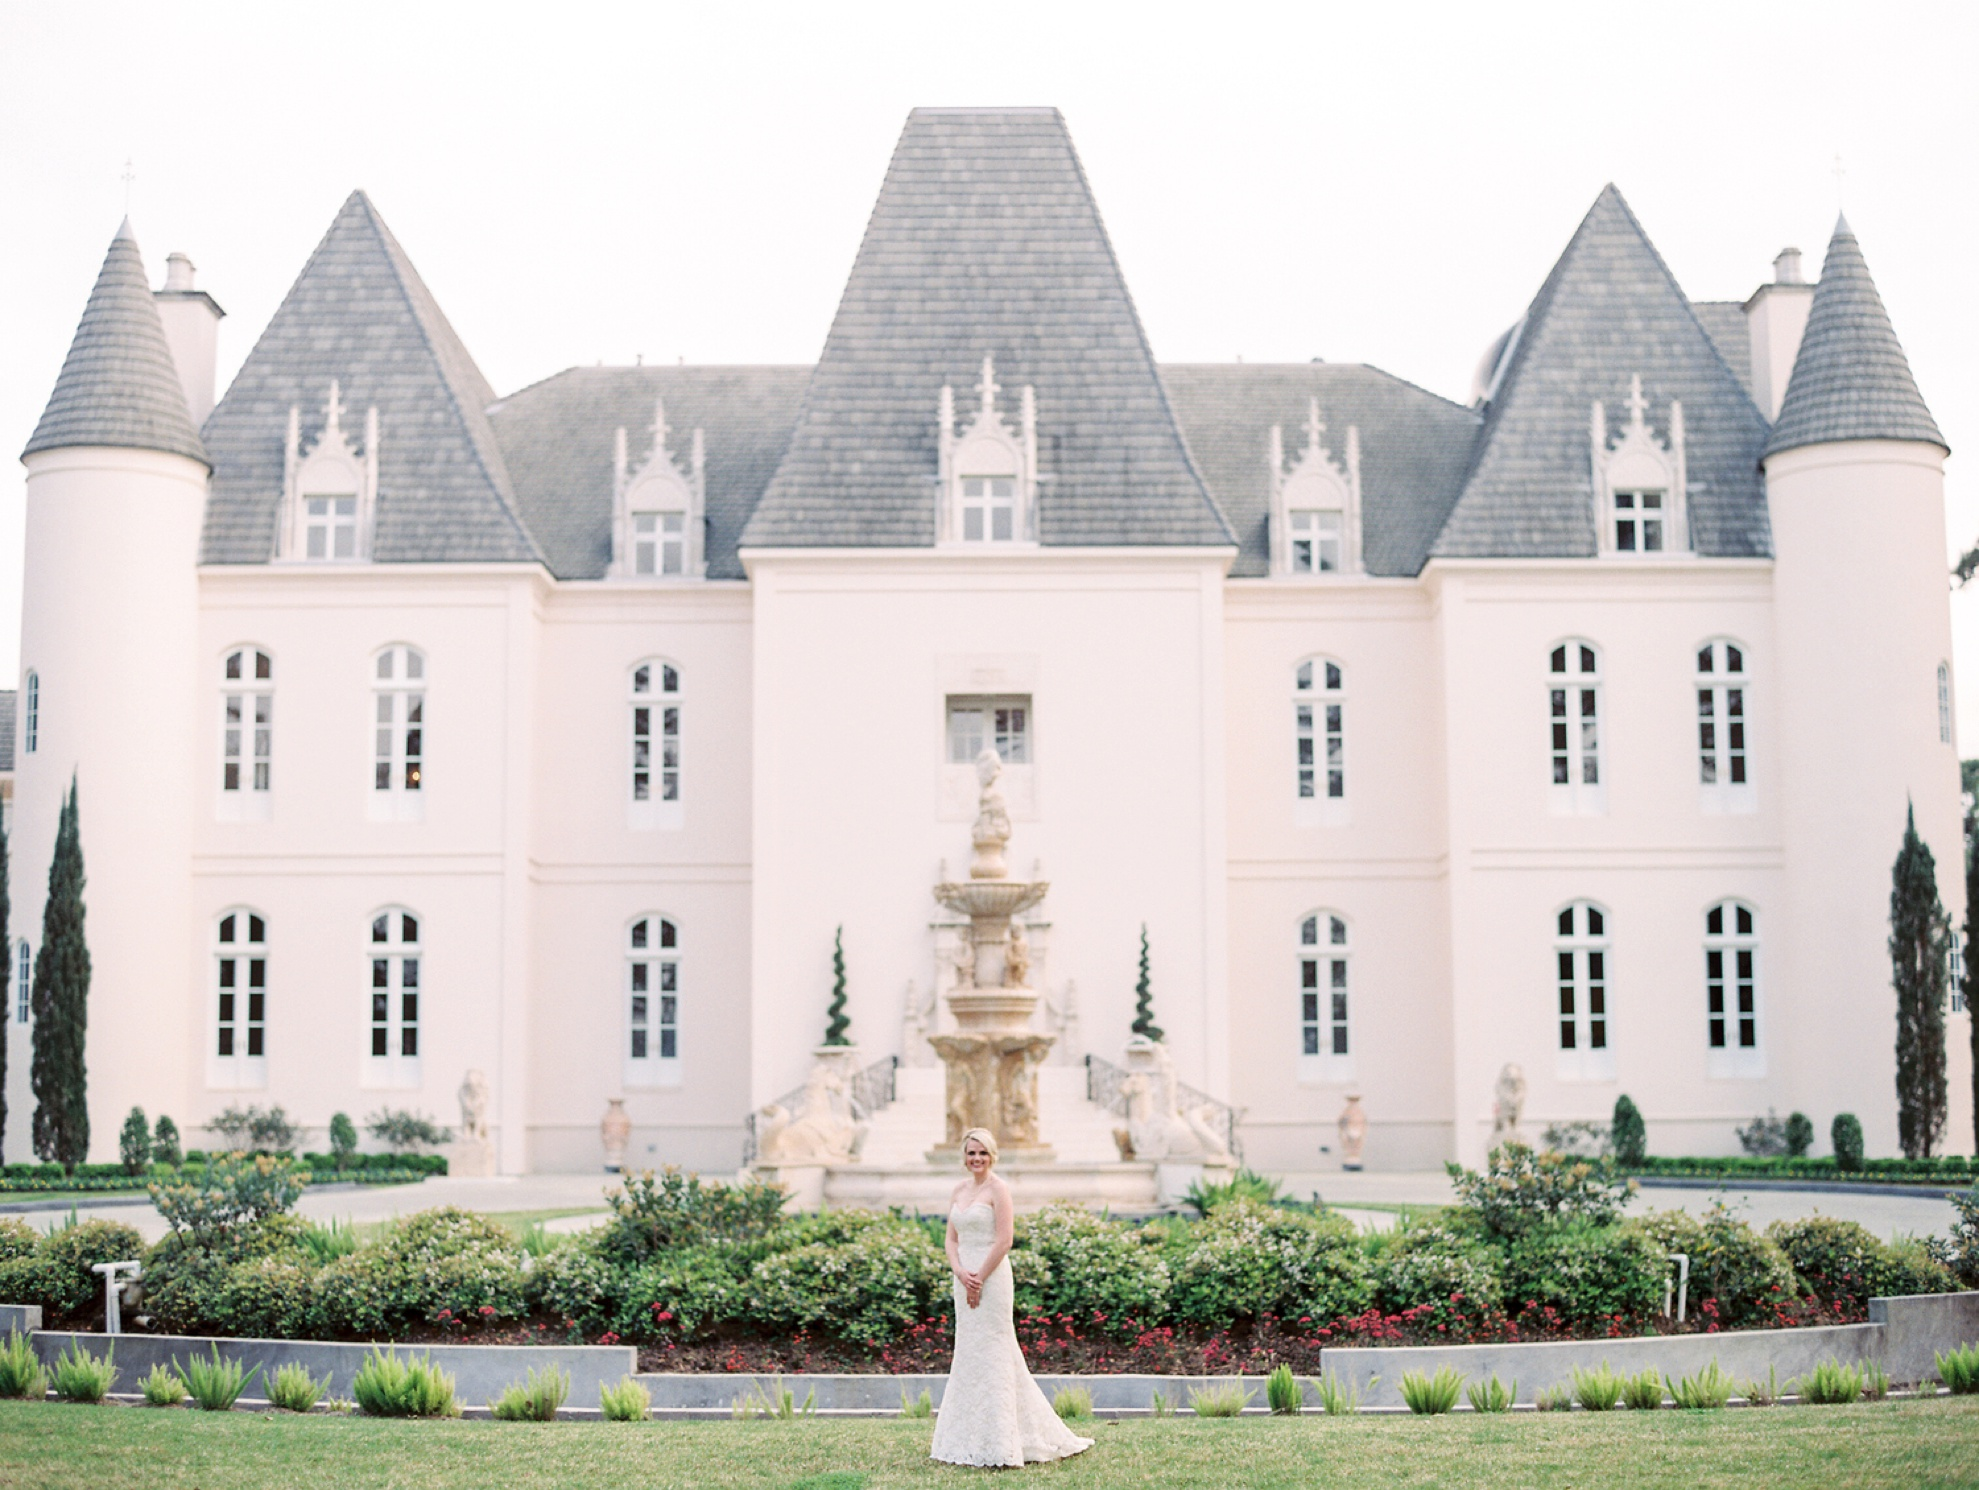 Chateau-Cocomar-Wedding-Photographer-Ceremony-Reception-Houston-Dana-Fernandez-Photographer-Film.jpg